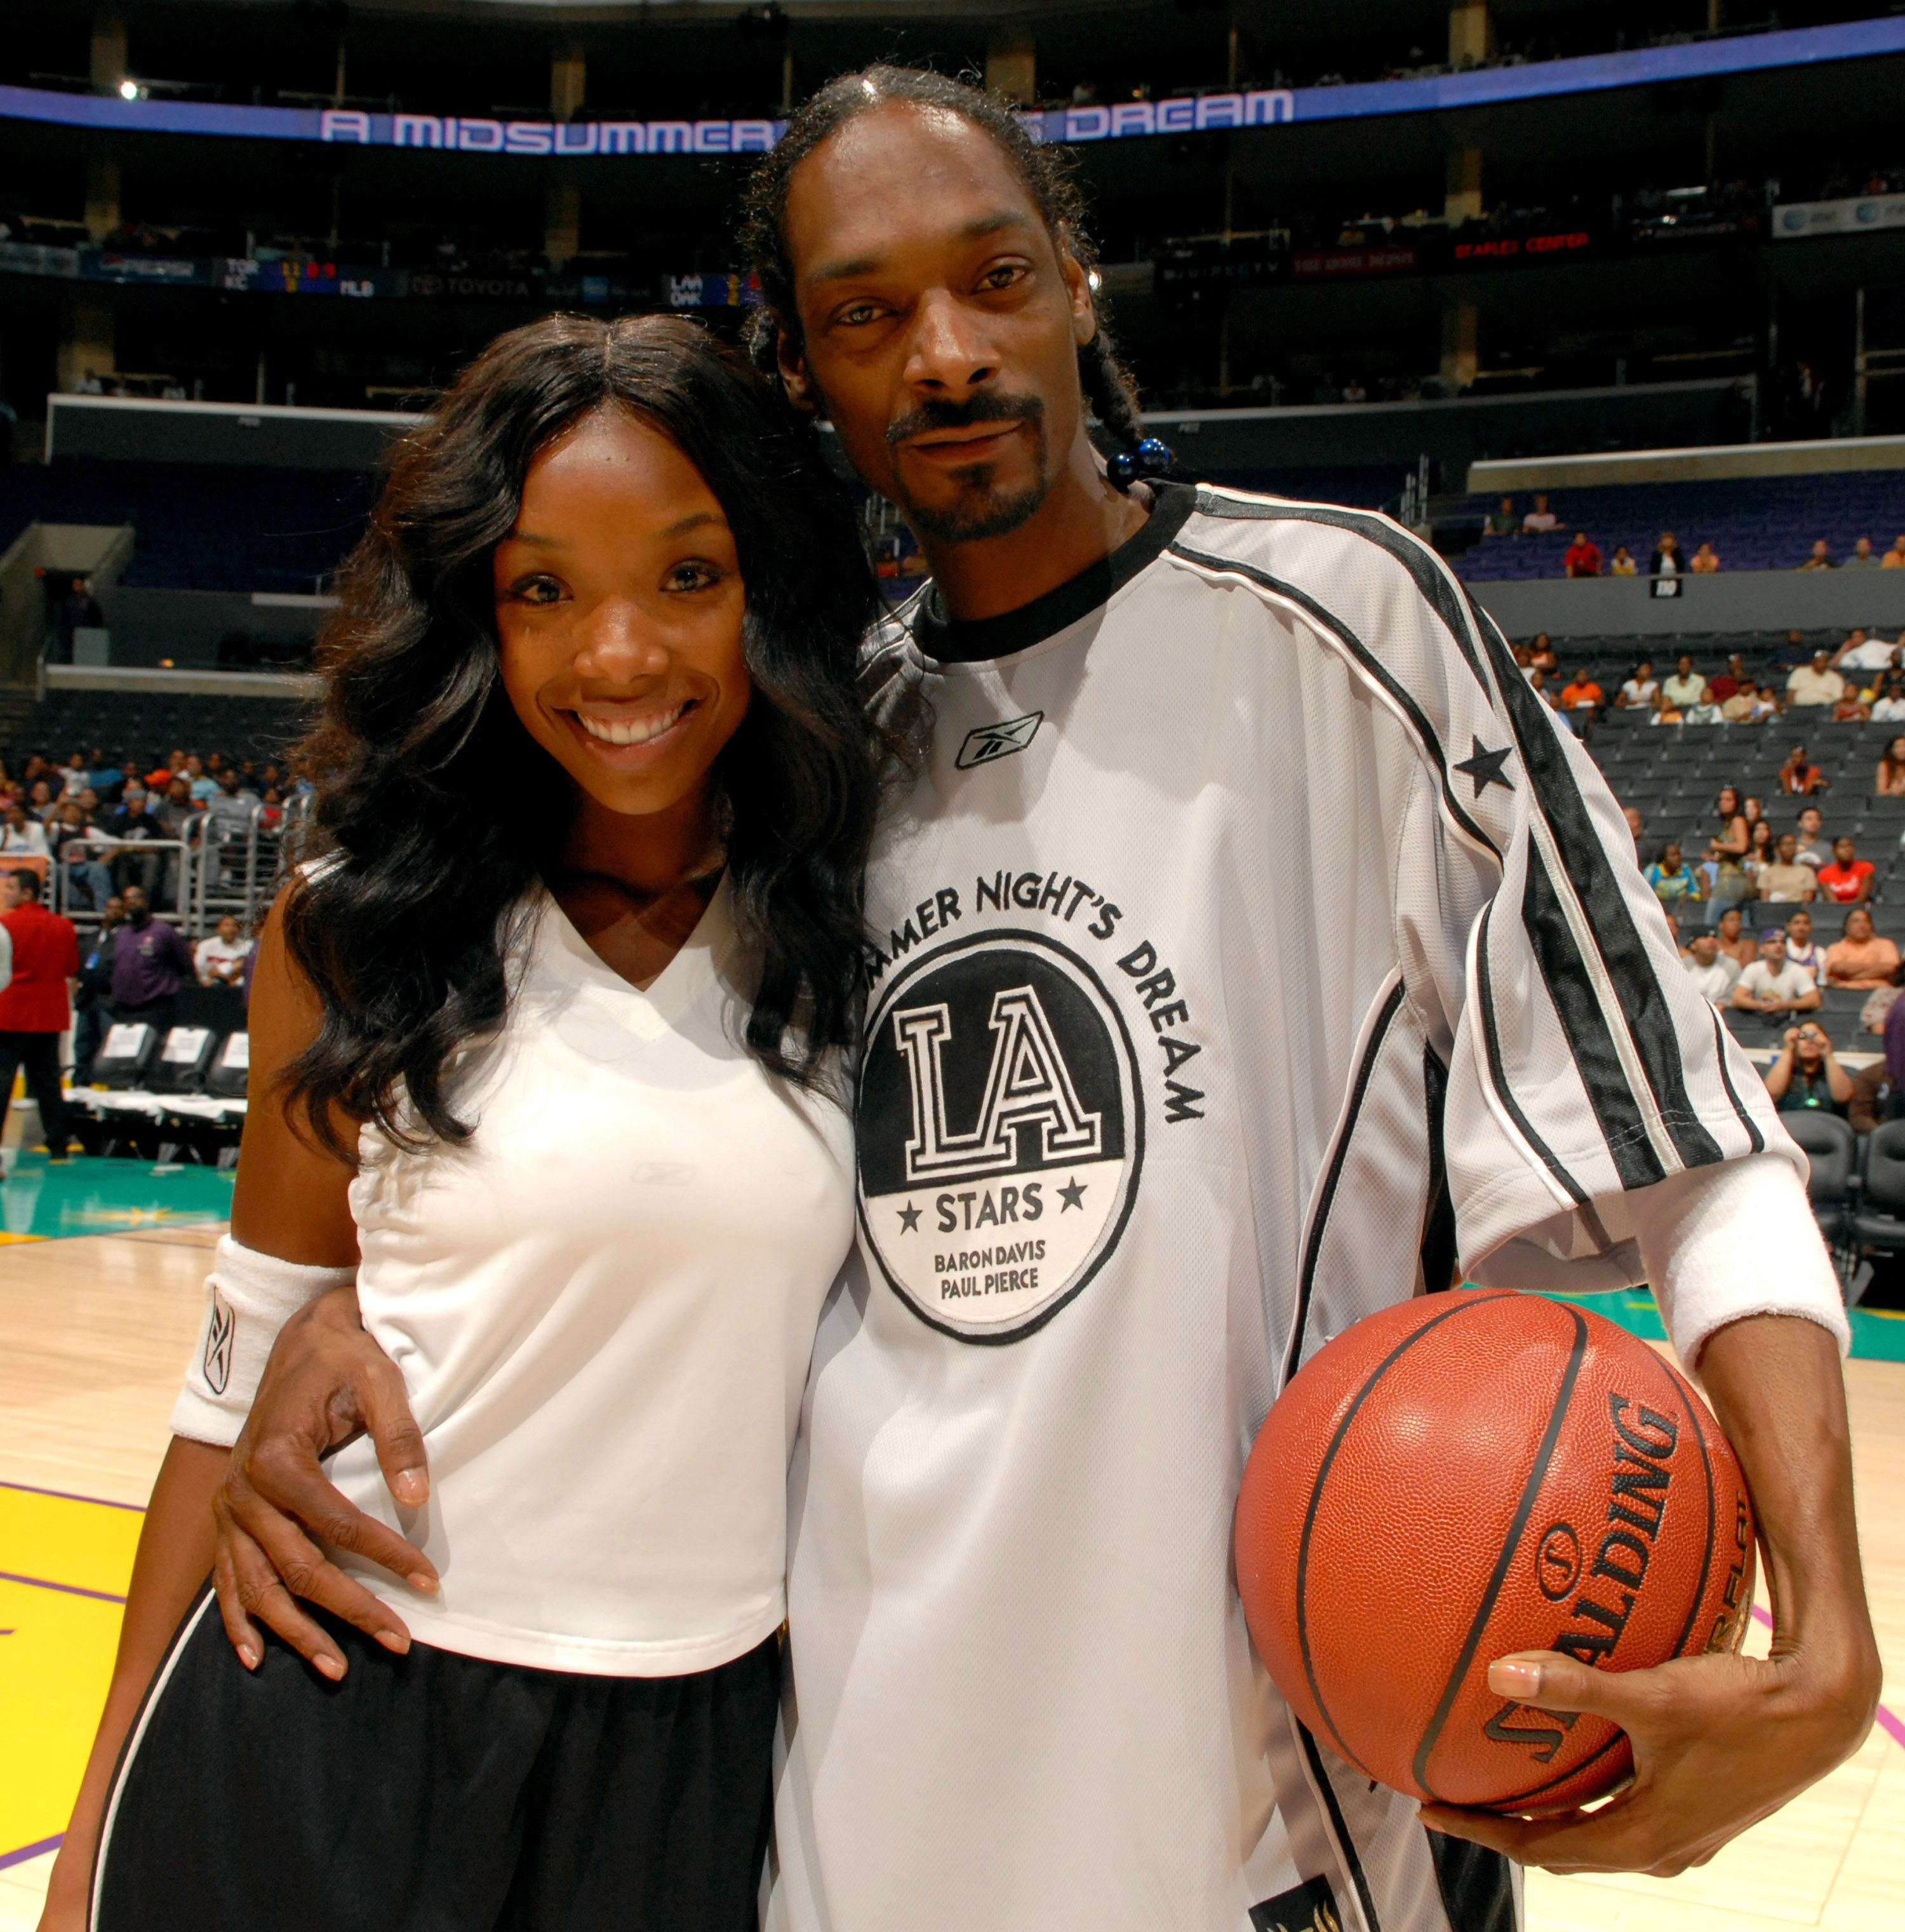 Snoop Dogg and Brandy at a basketball game